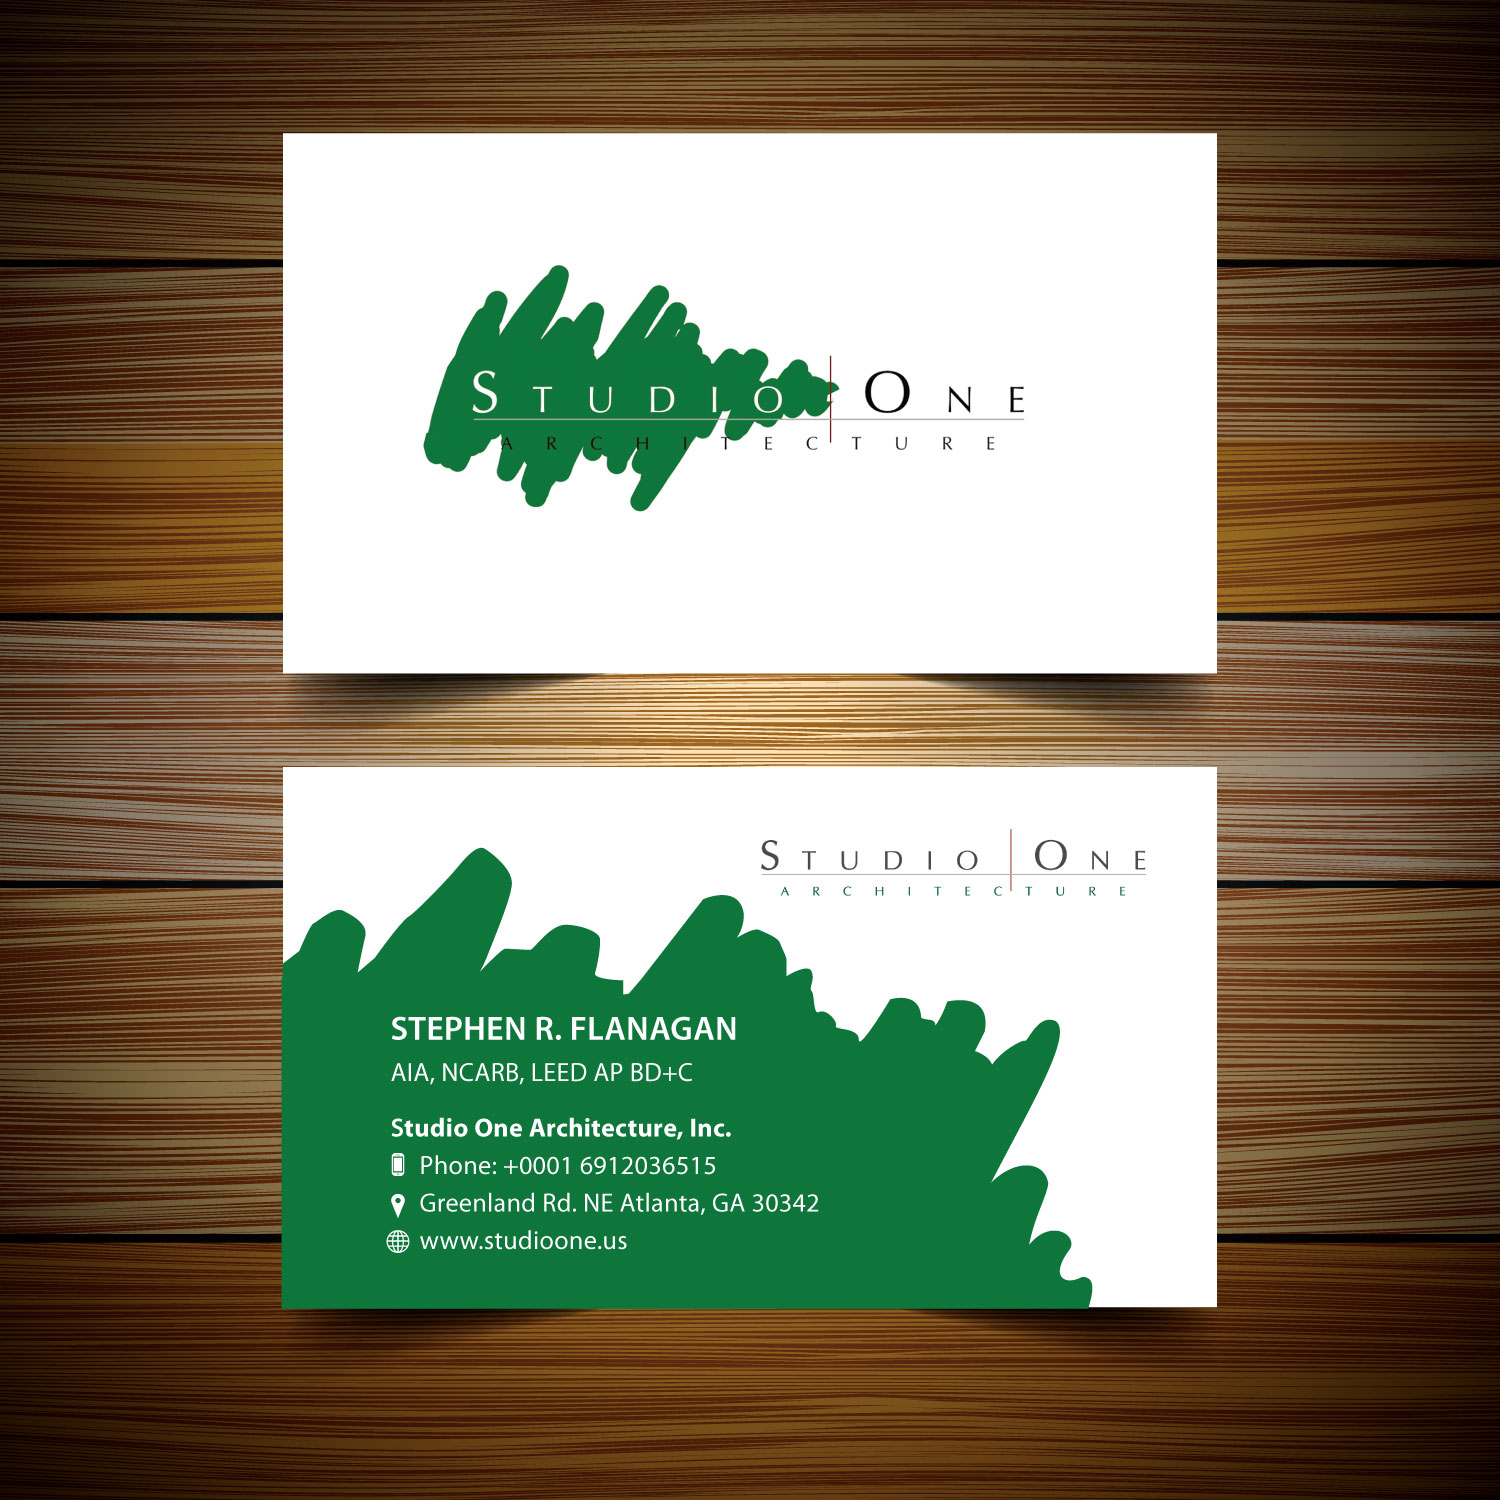 216 Elegant Serious Architect Business Card Designs for a ...